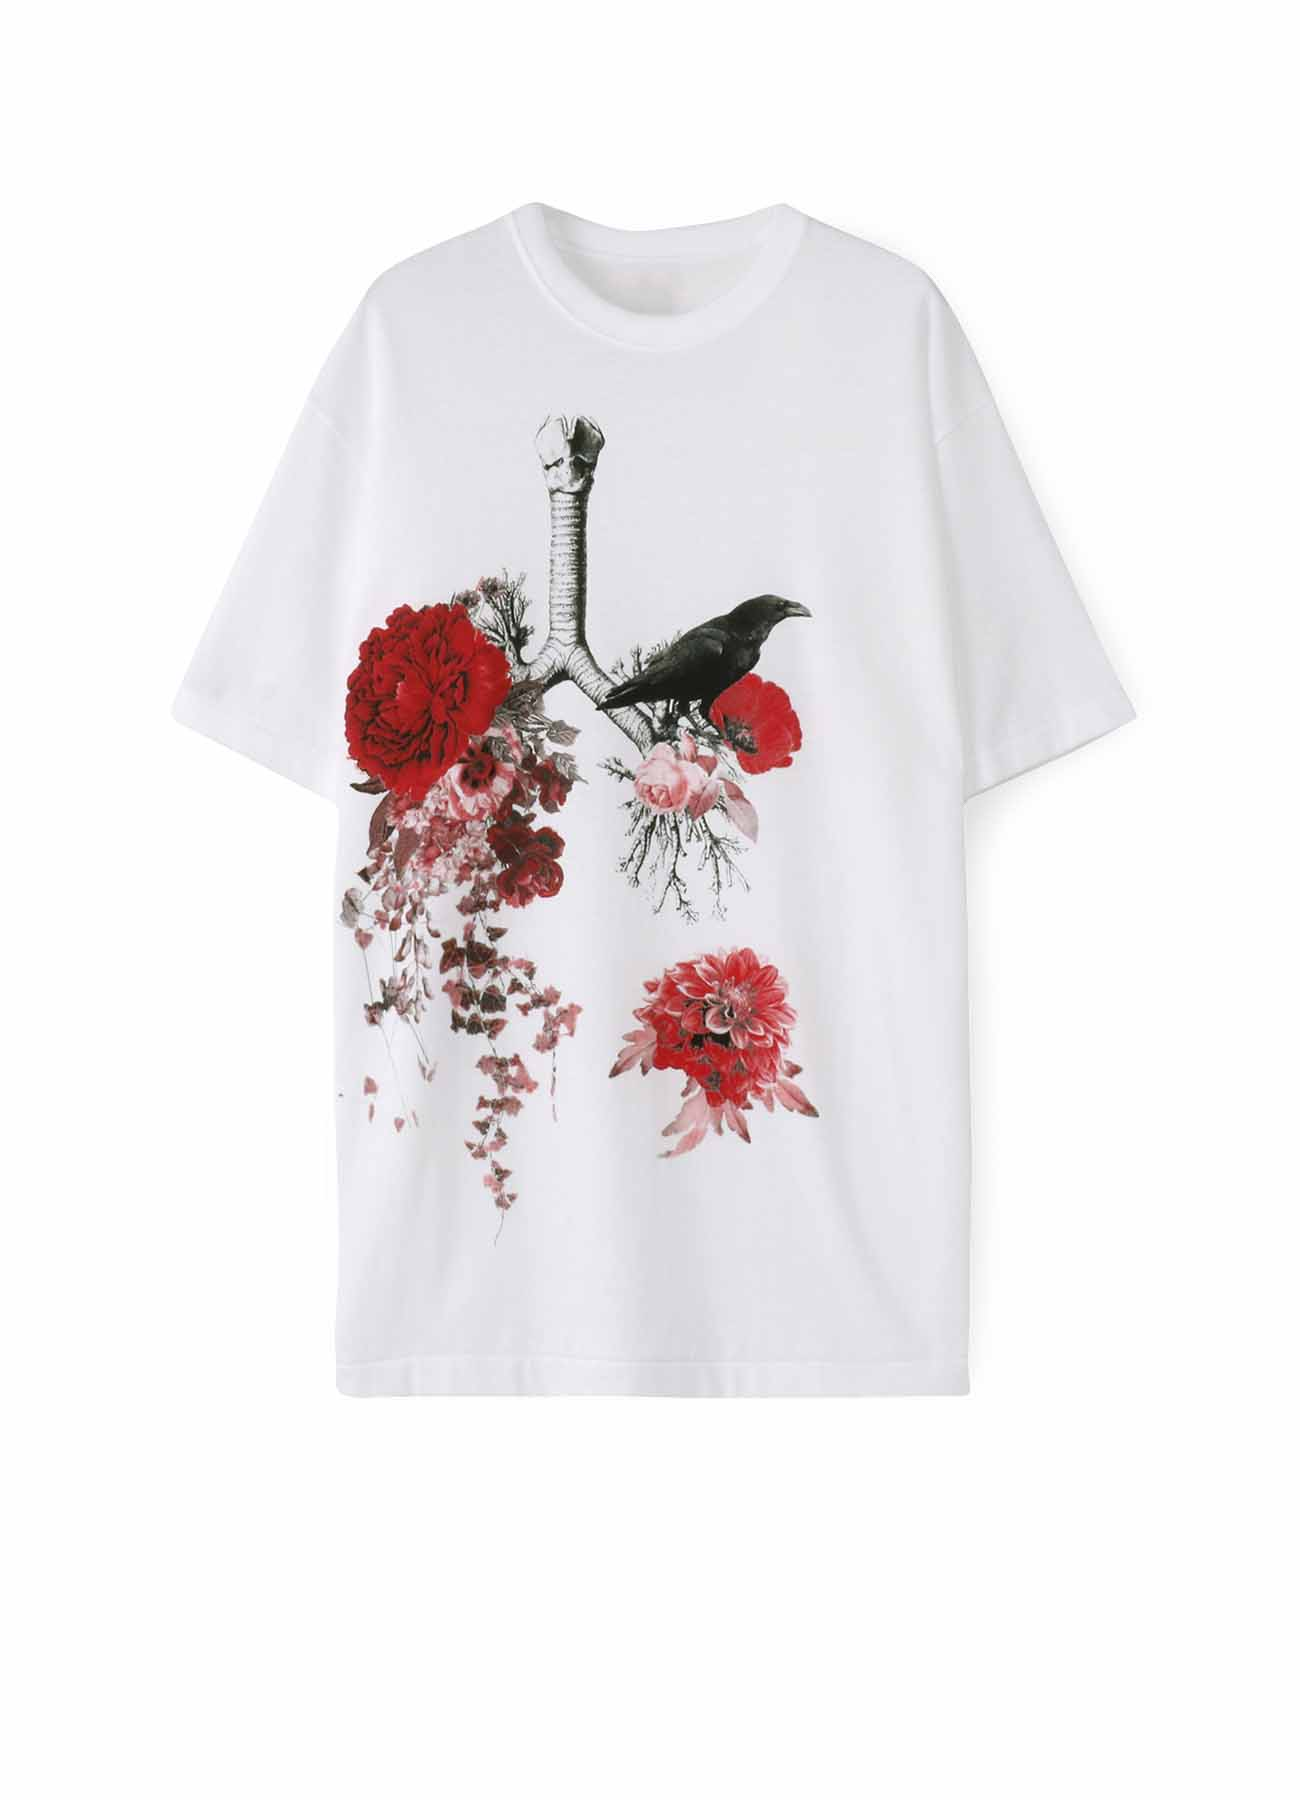 Crow on Lungs and Flowers T恤